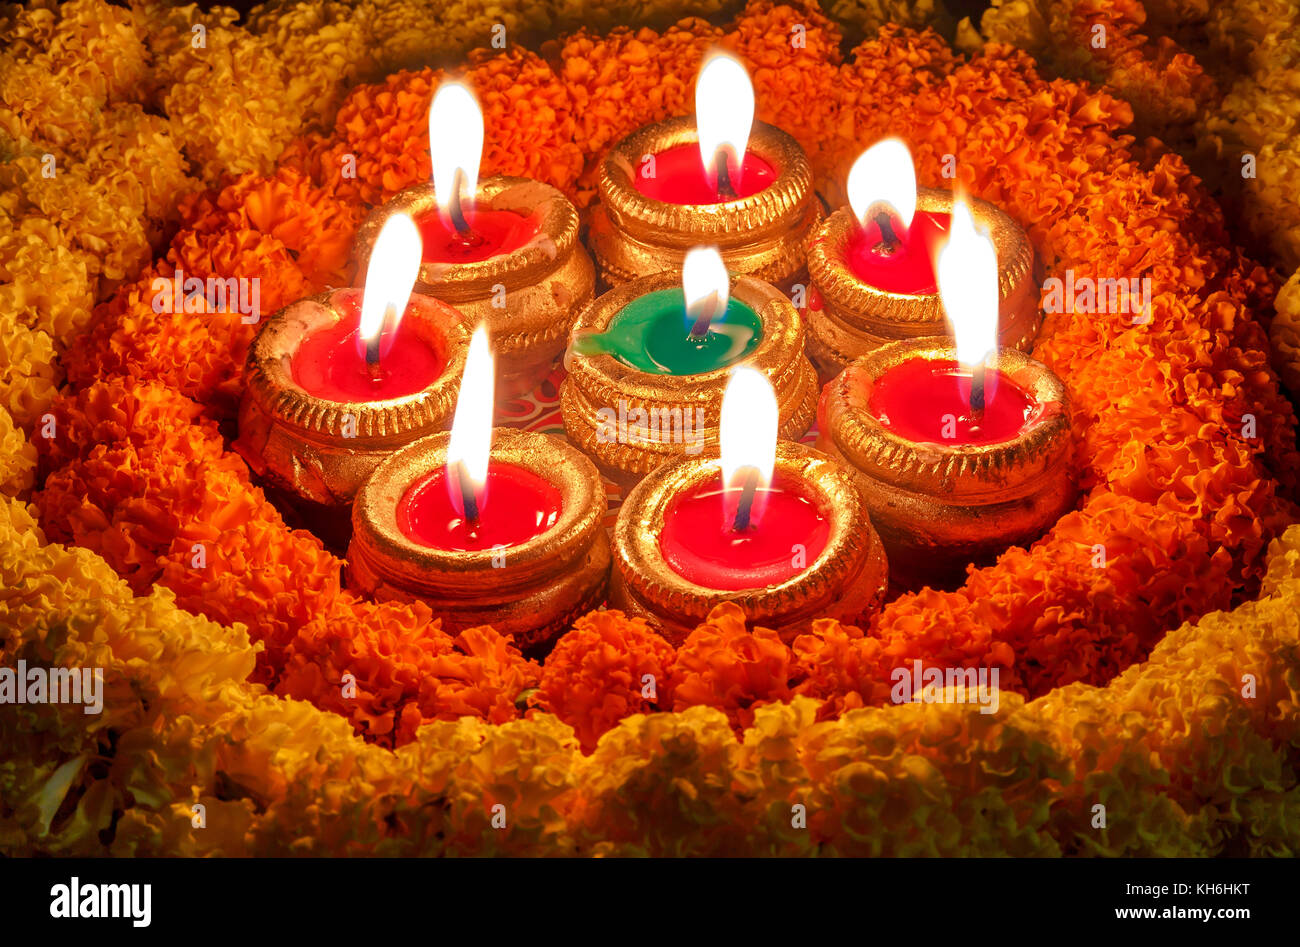 Diwali clay diya lamps with floral decorations in dark background Stock Photo